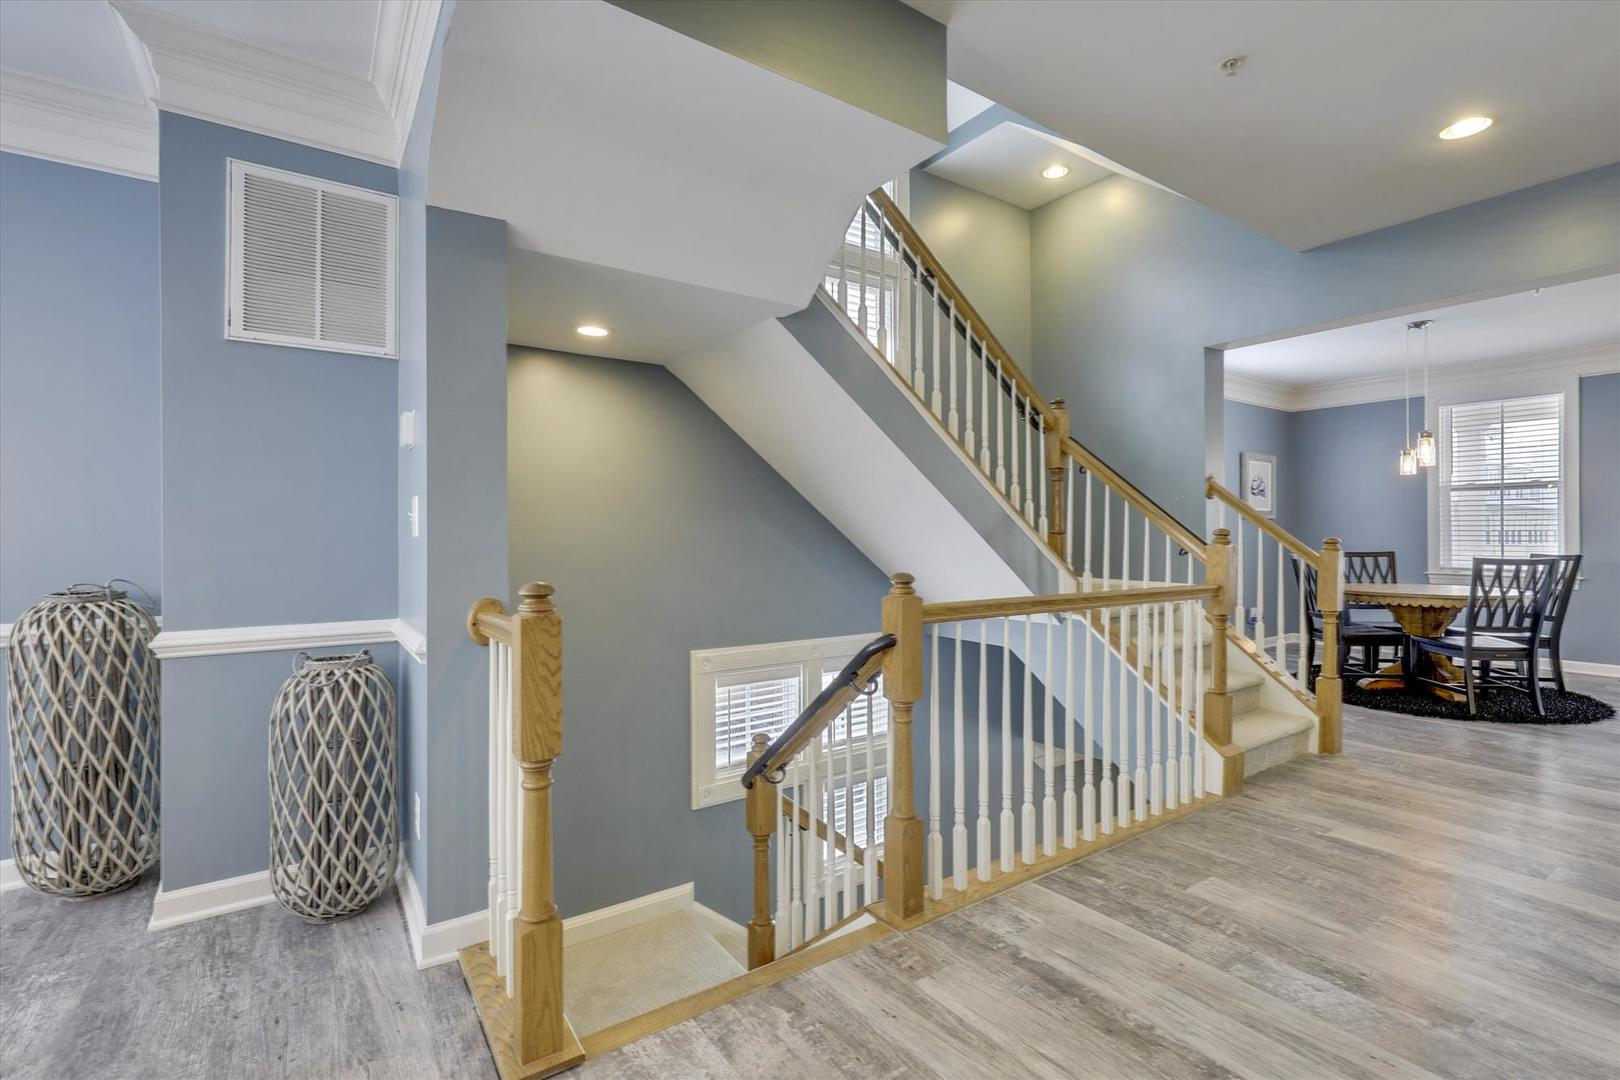 28 Seaside Dr. - Stairs to Third Floor